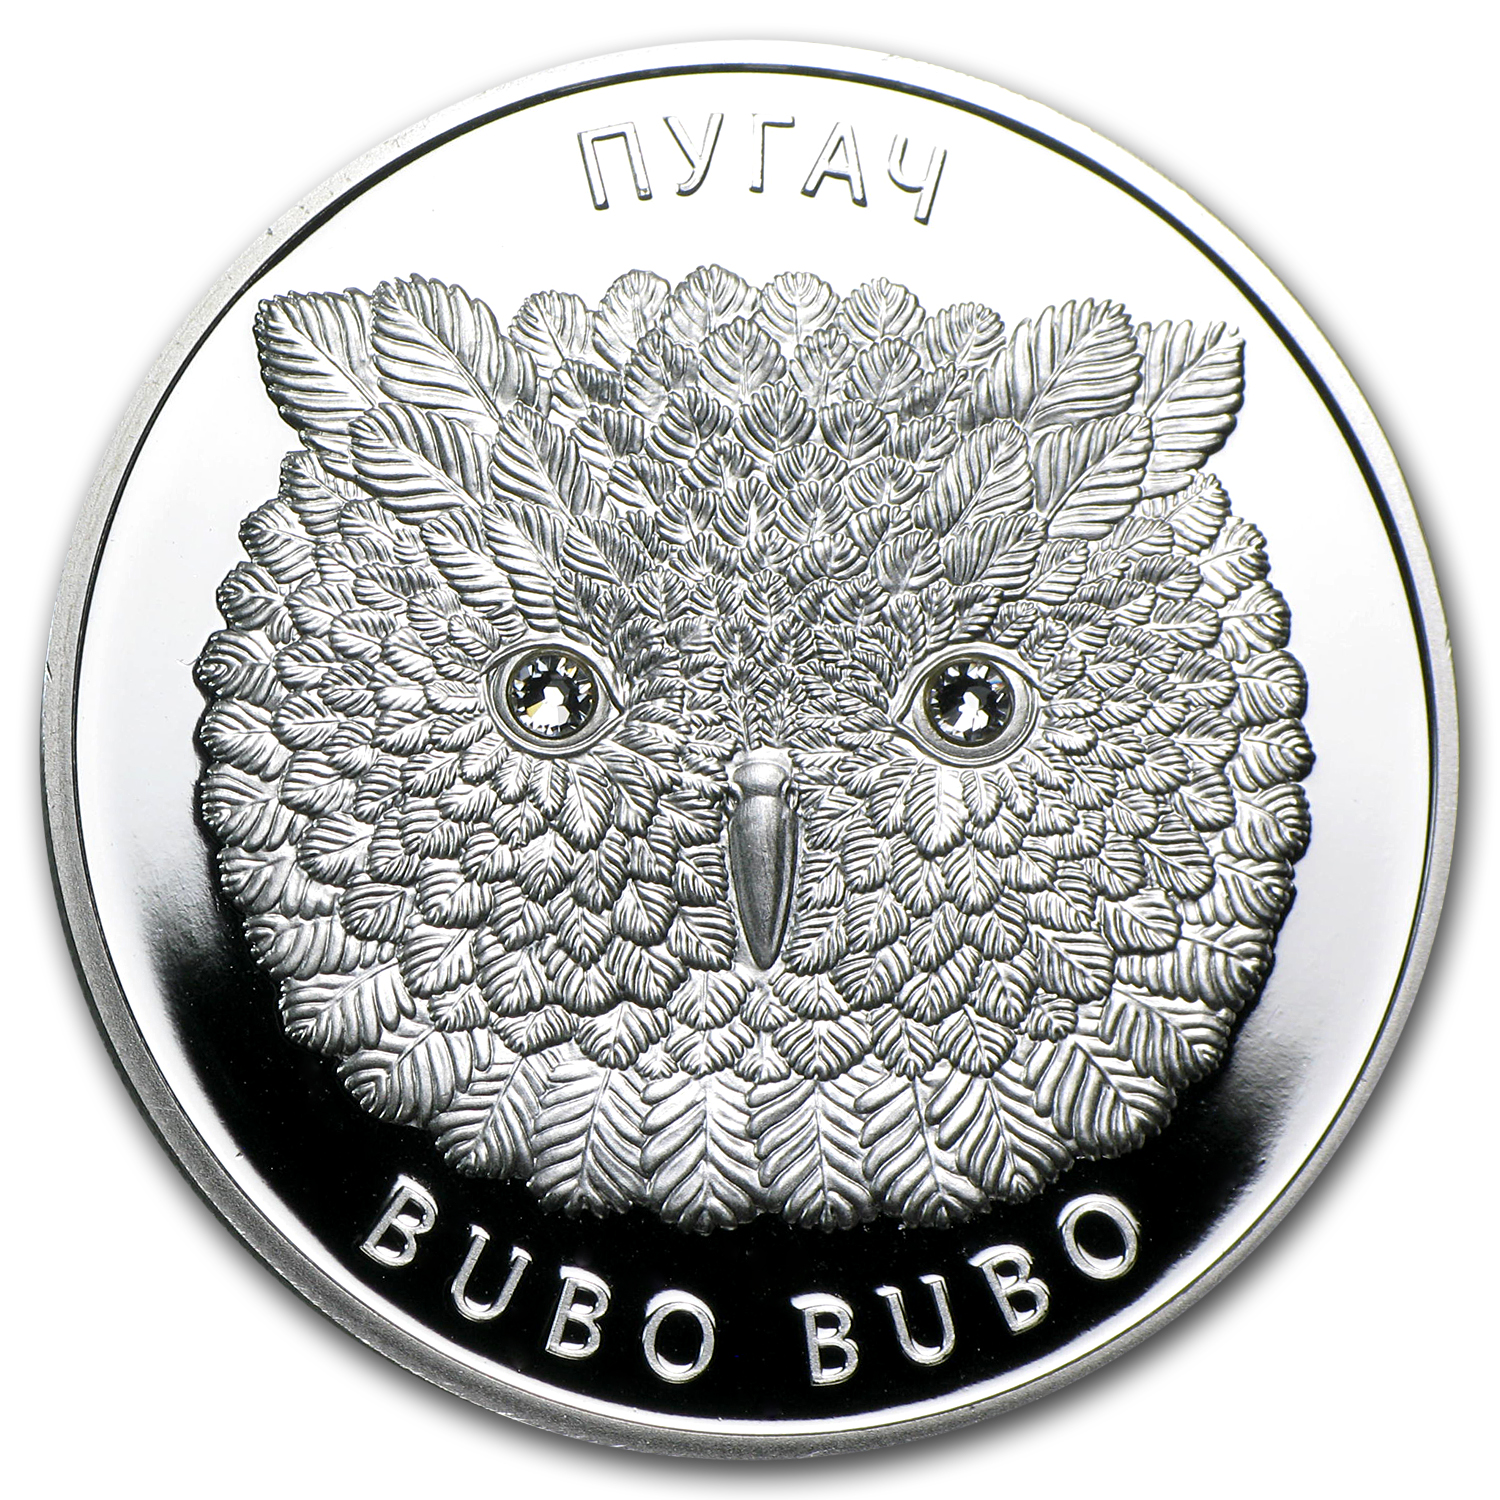 Belarus 2010 Proof Silver Eagle Owl - Bubo Bubo (No Coa)